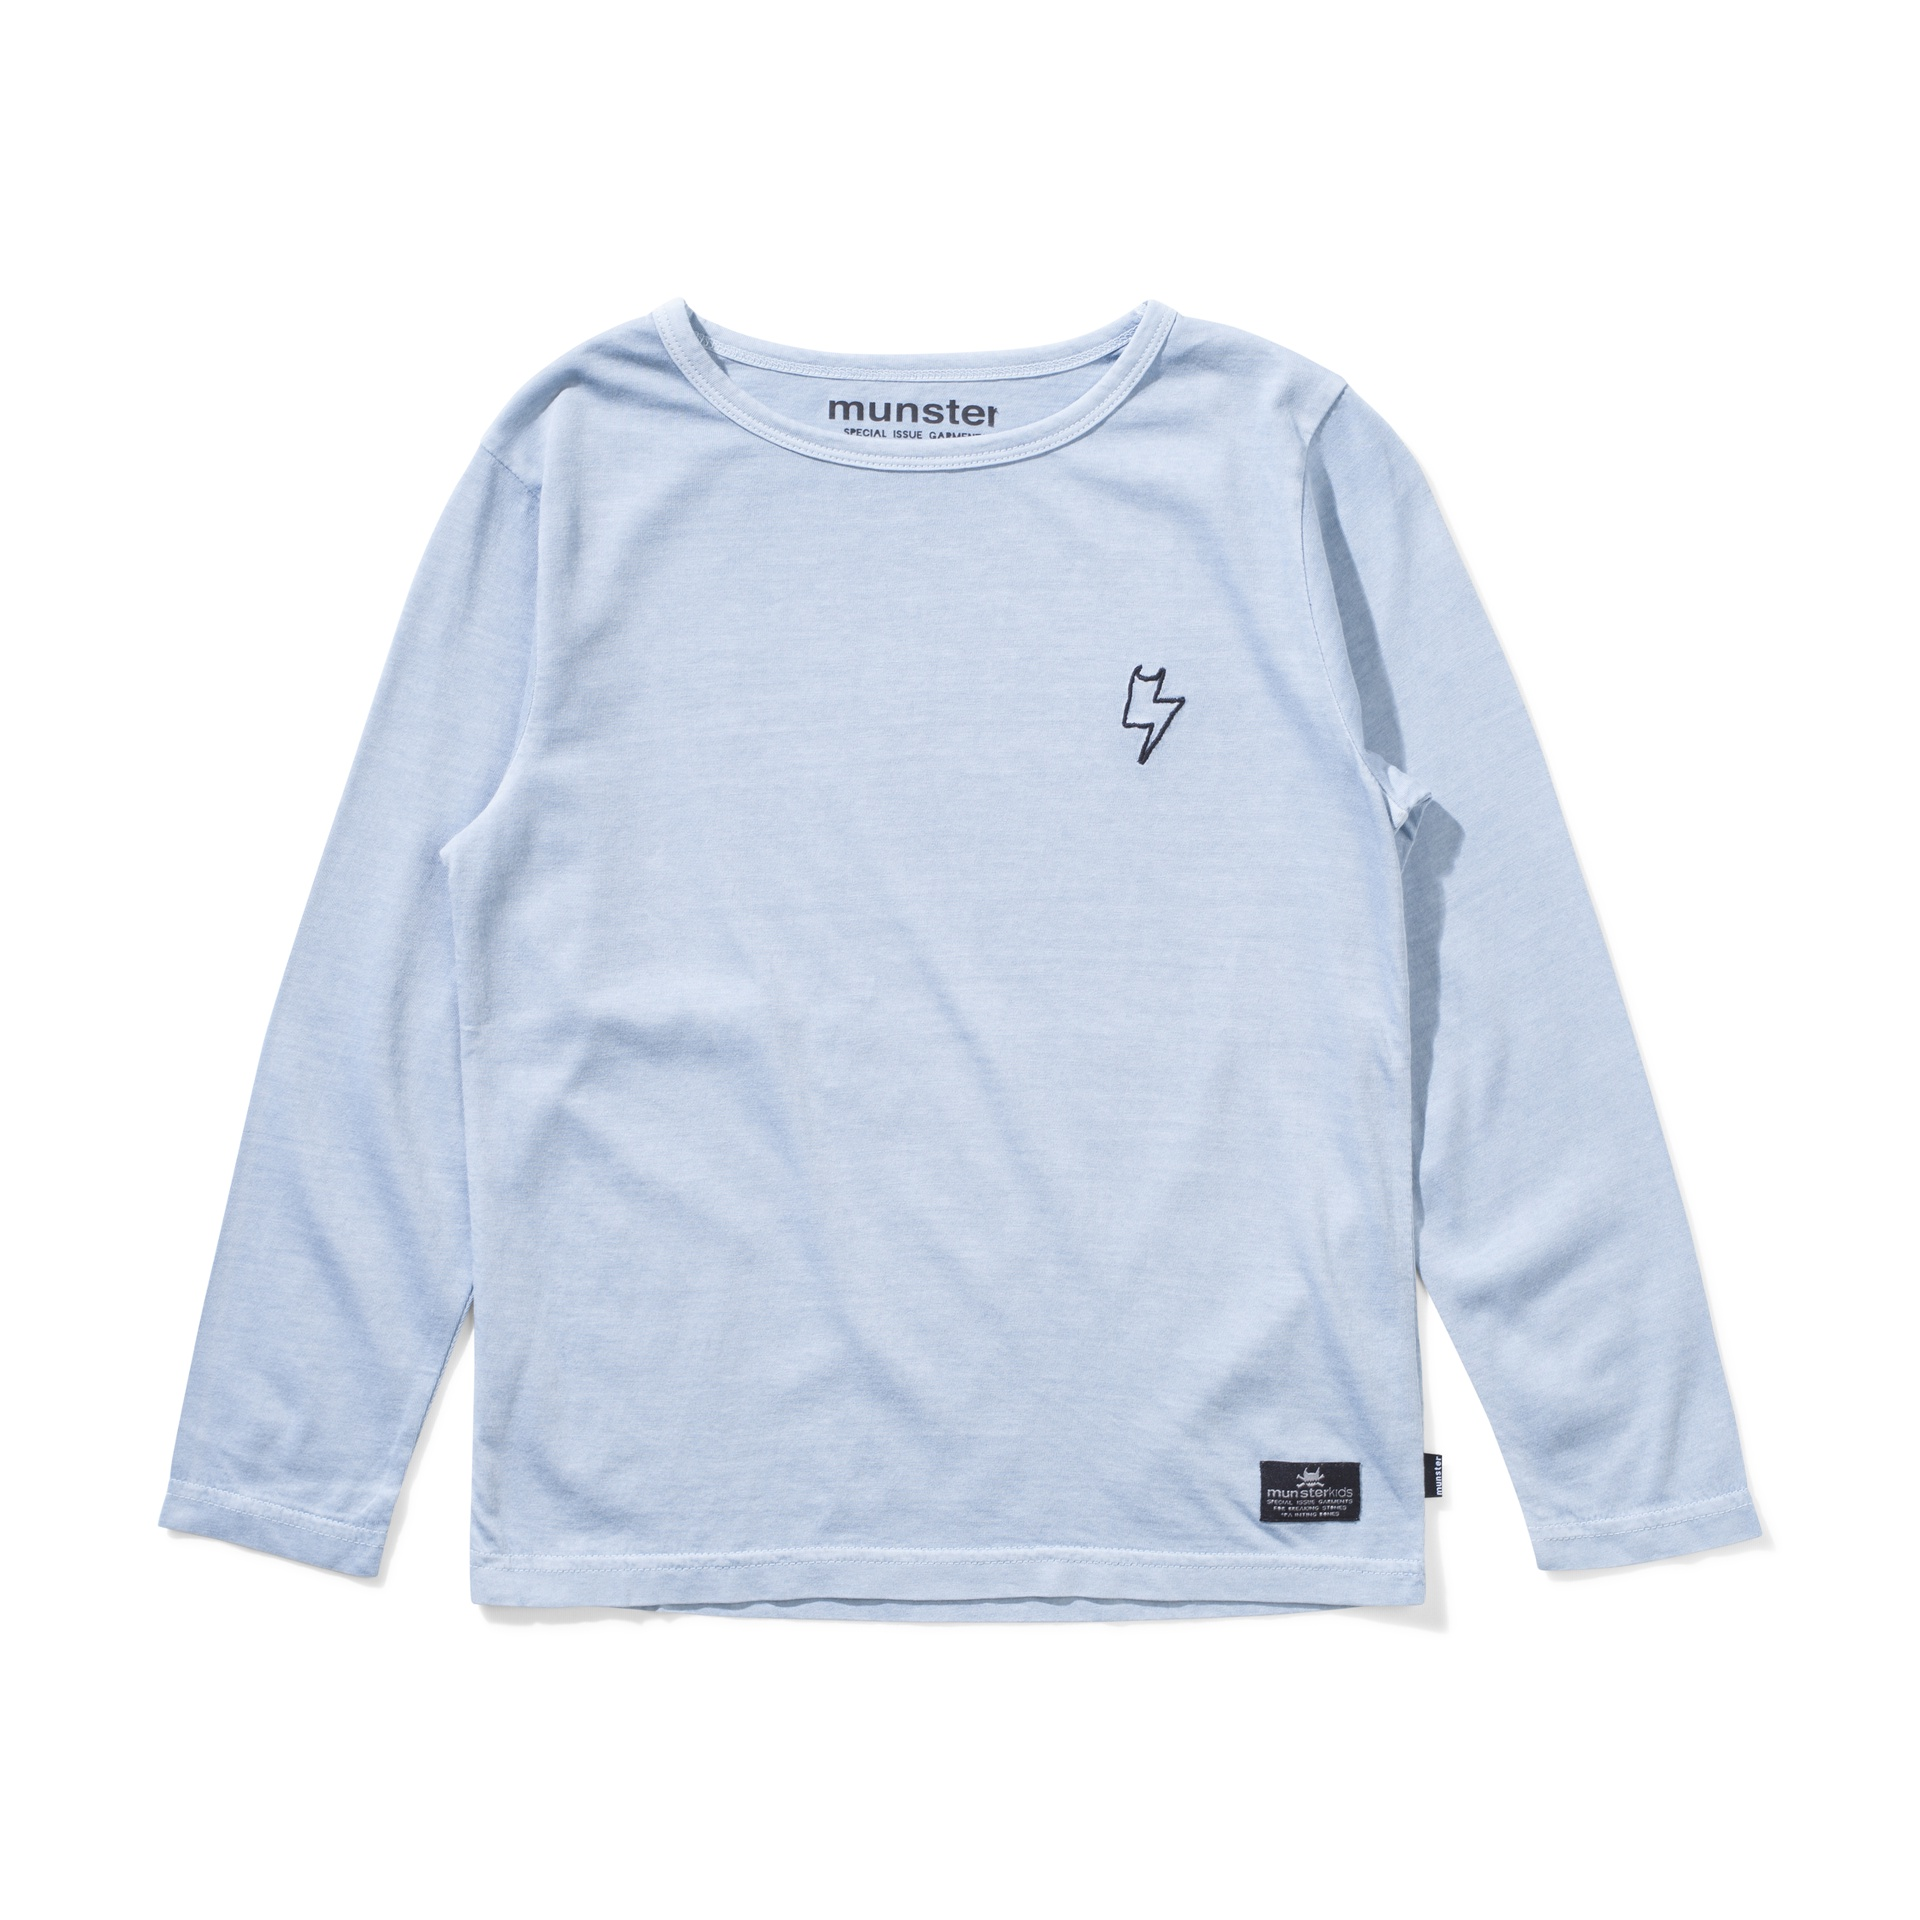 Munster Washed Up Long Sleeve Tee (washed mid blue)